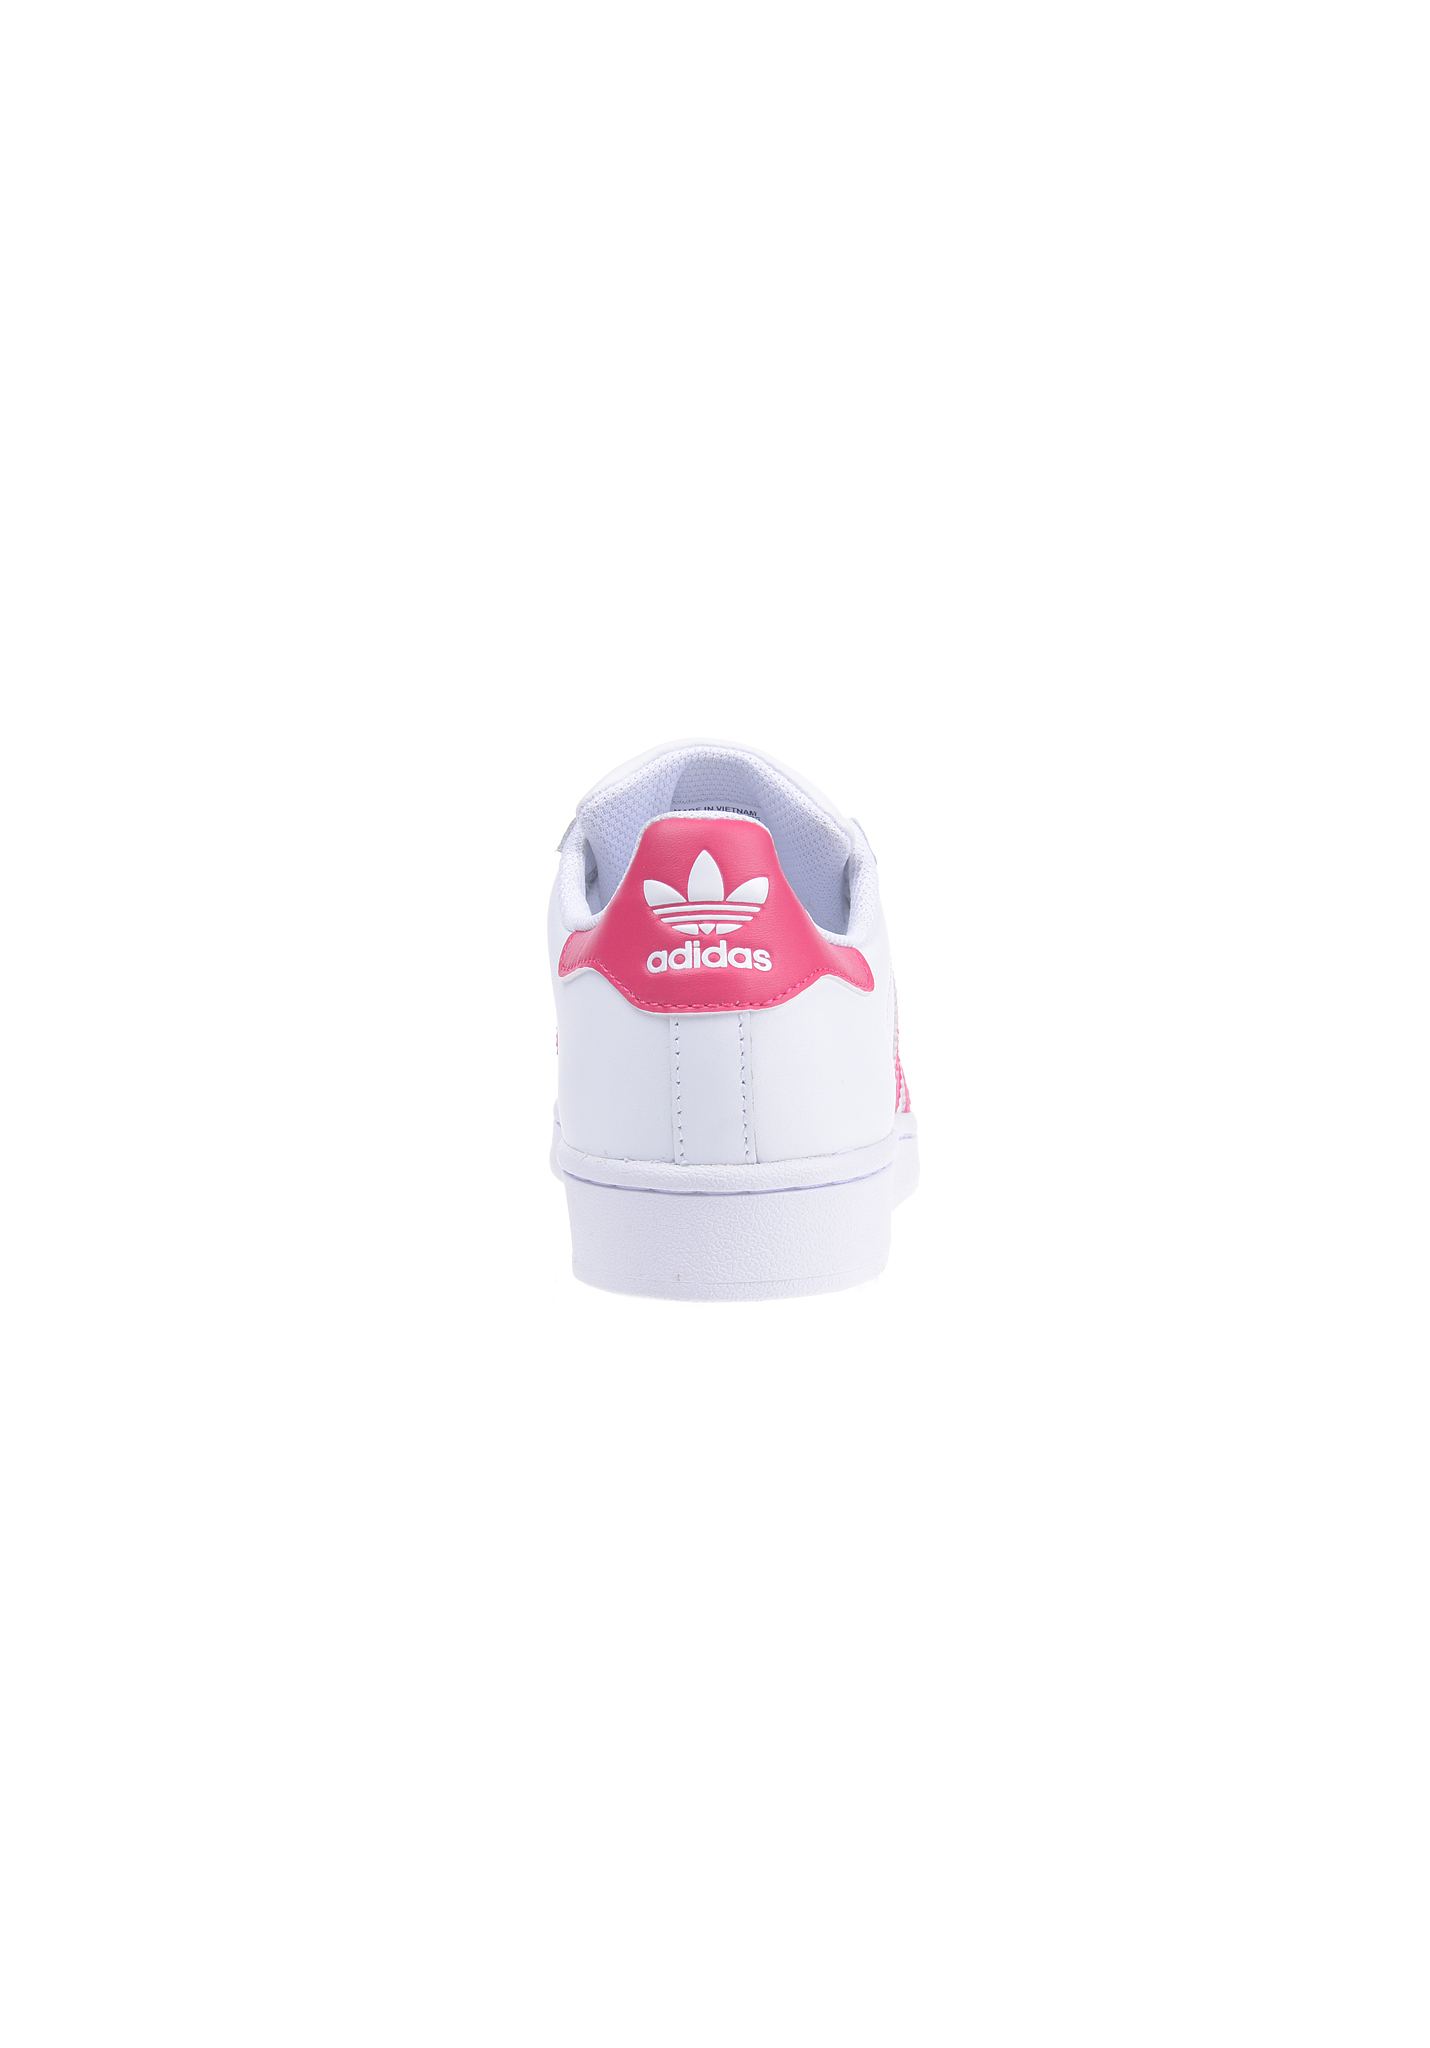 adidas schuhe superstar kinder